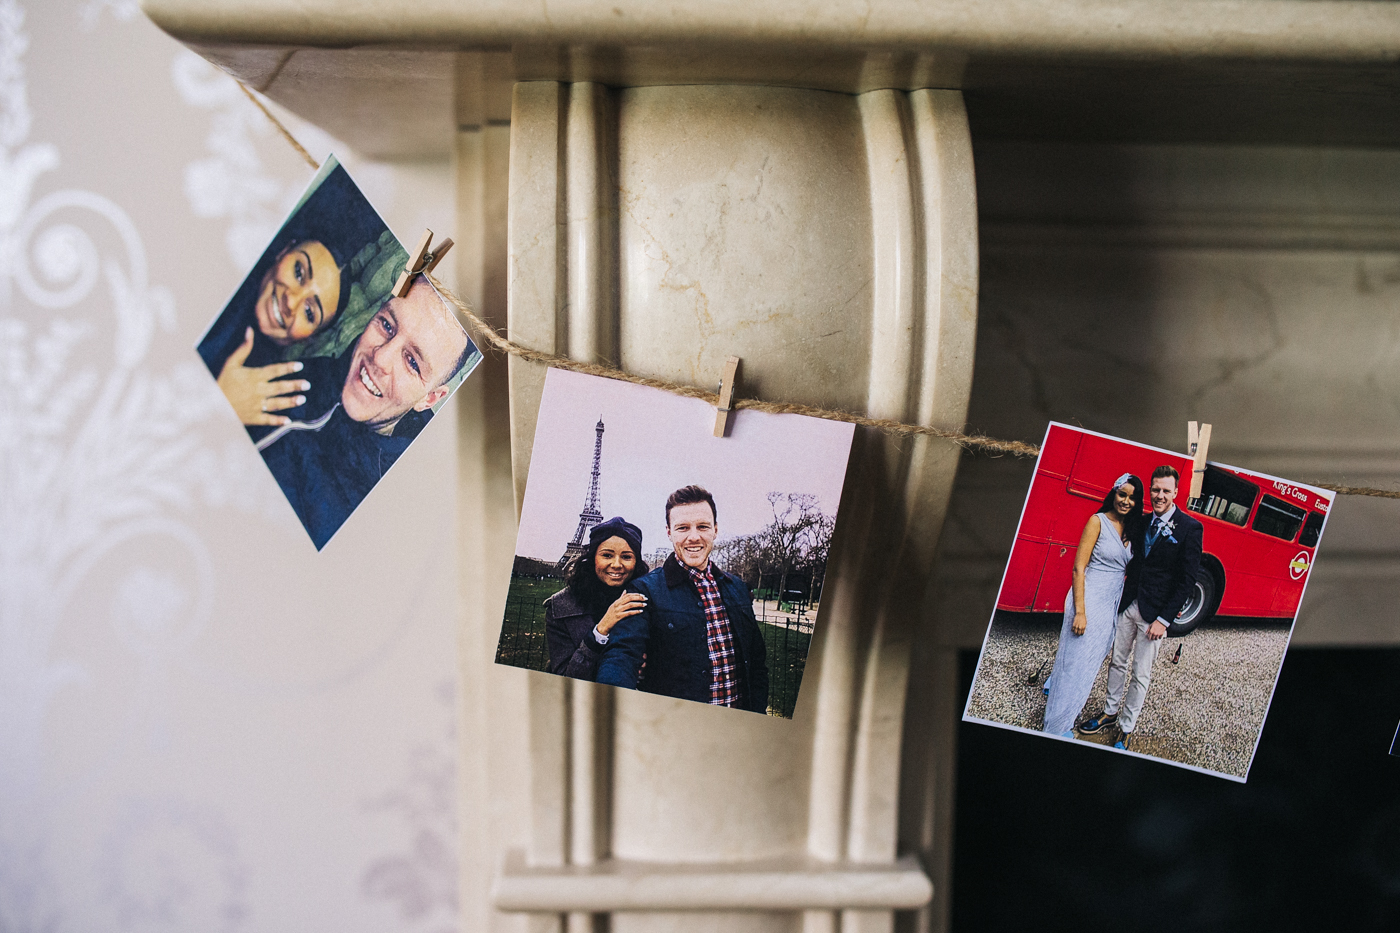 photos of the couple as decoration. relaxed teesside middlesbrough wedding photographer, wedding at home